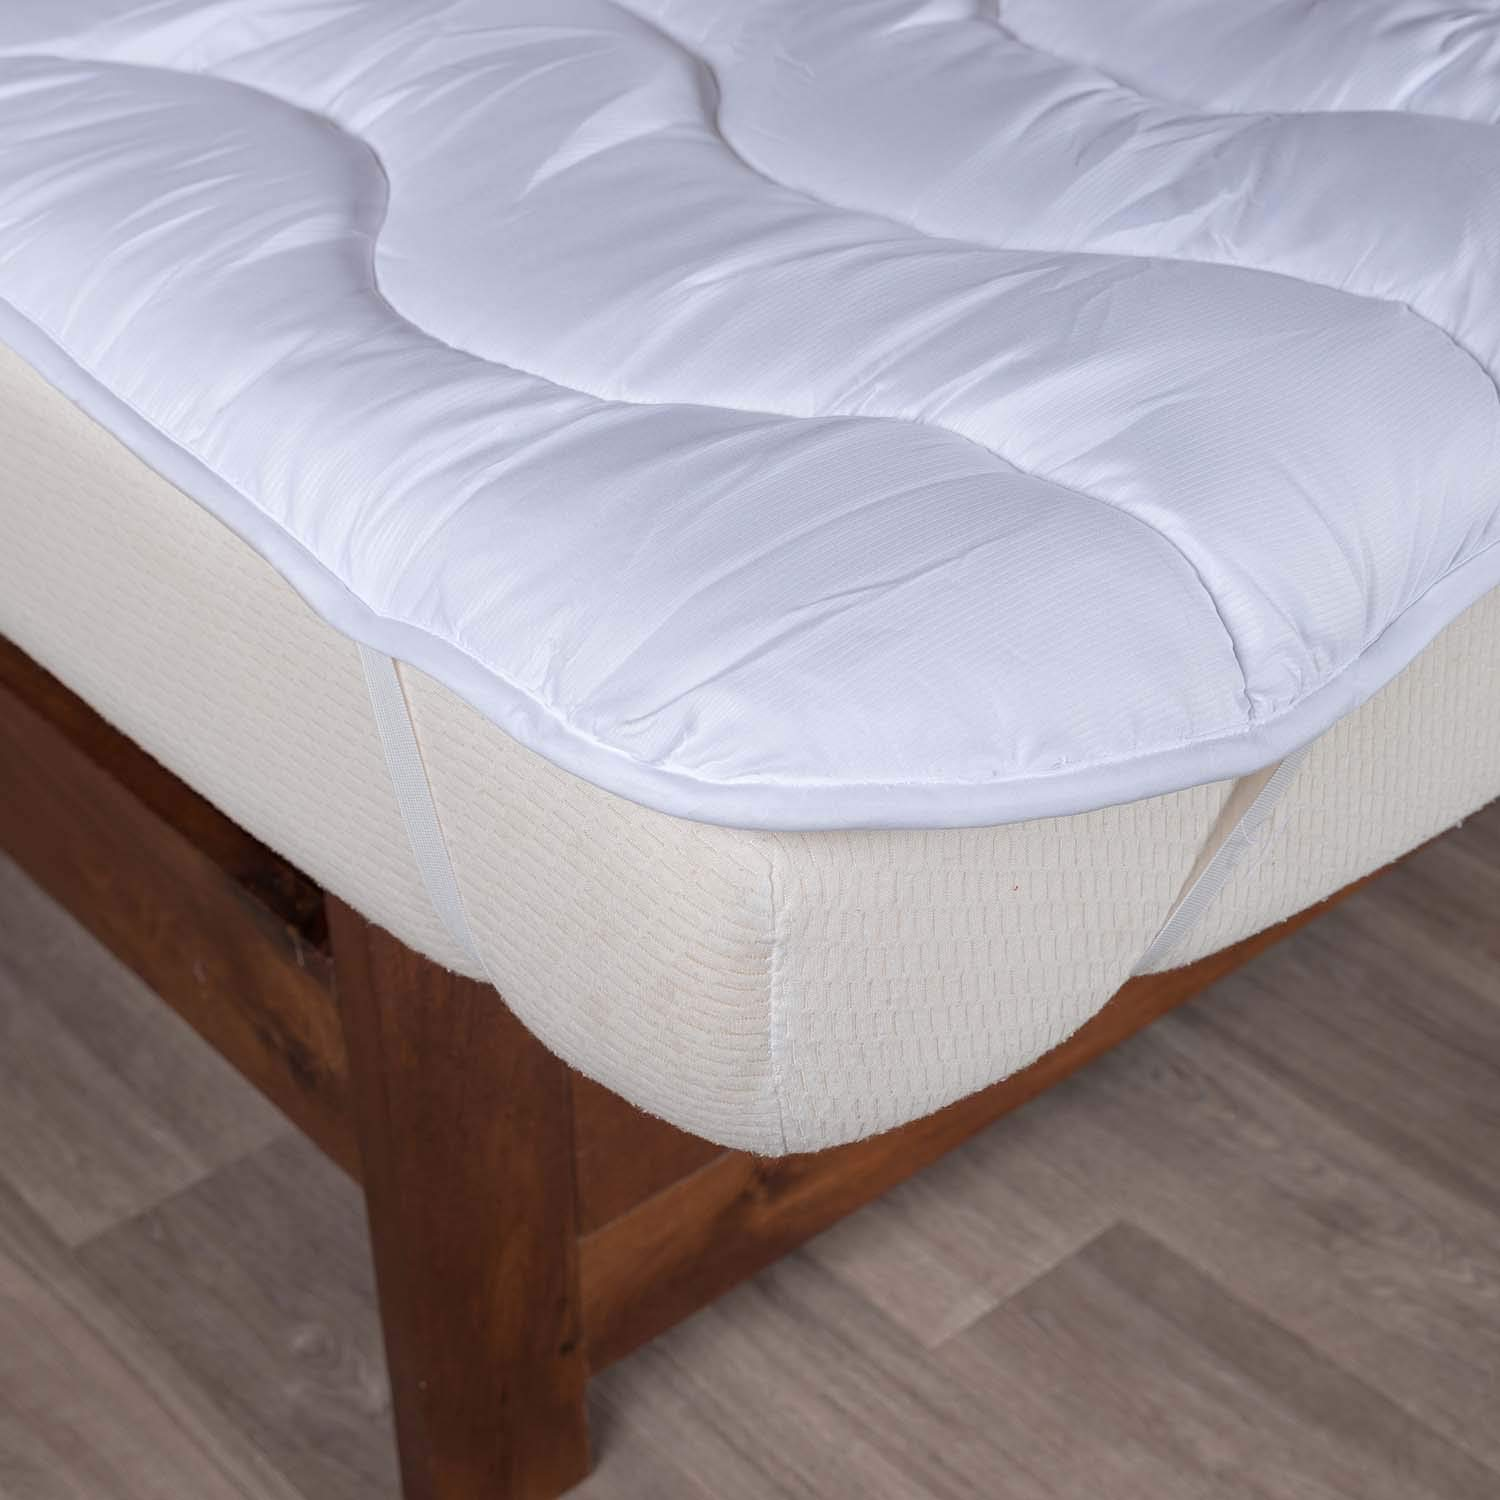 Homescapes Soft New Whole White Goose Feather Bed Double 7cm